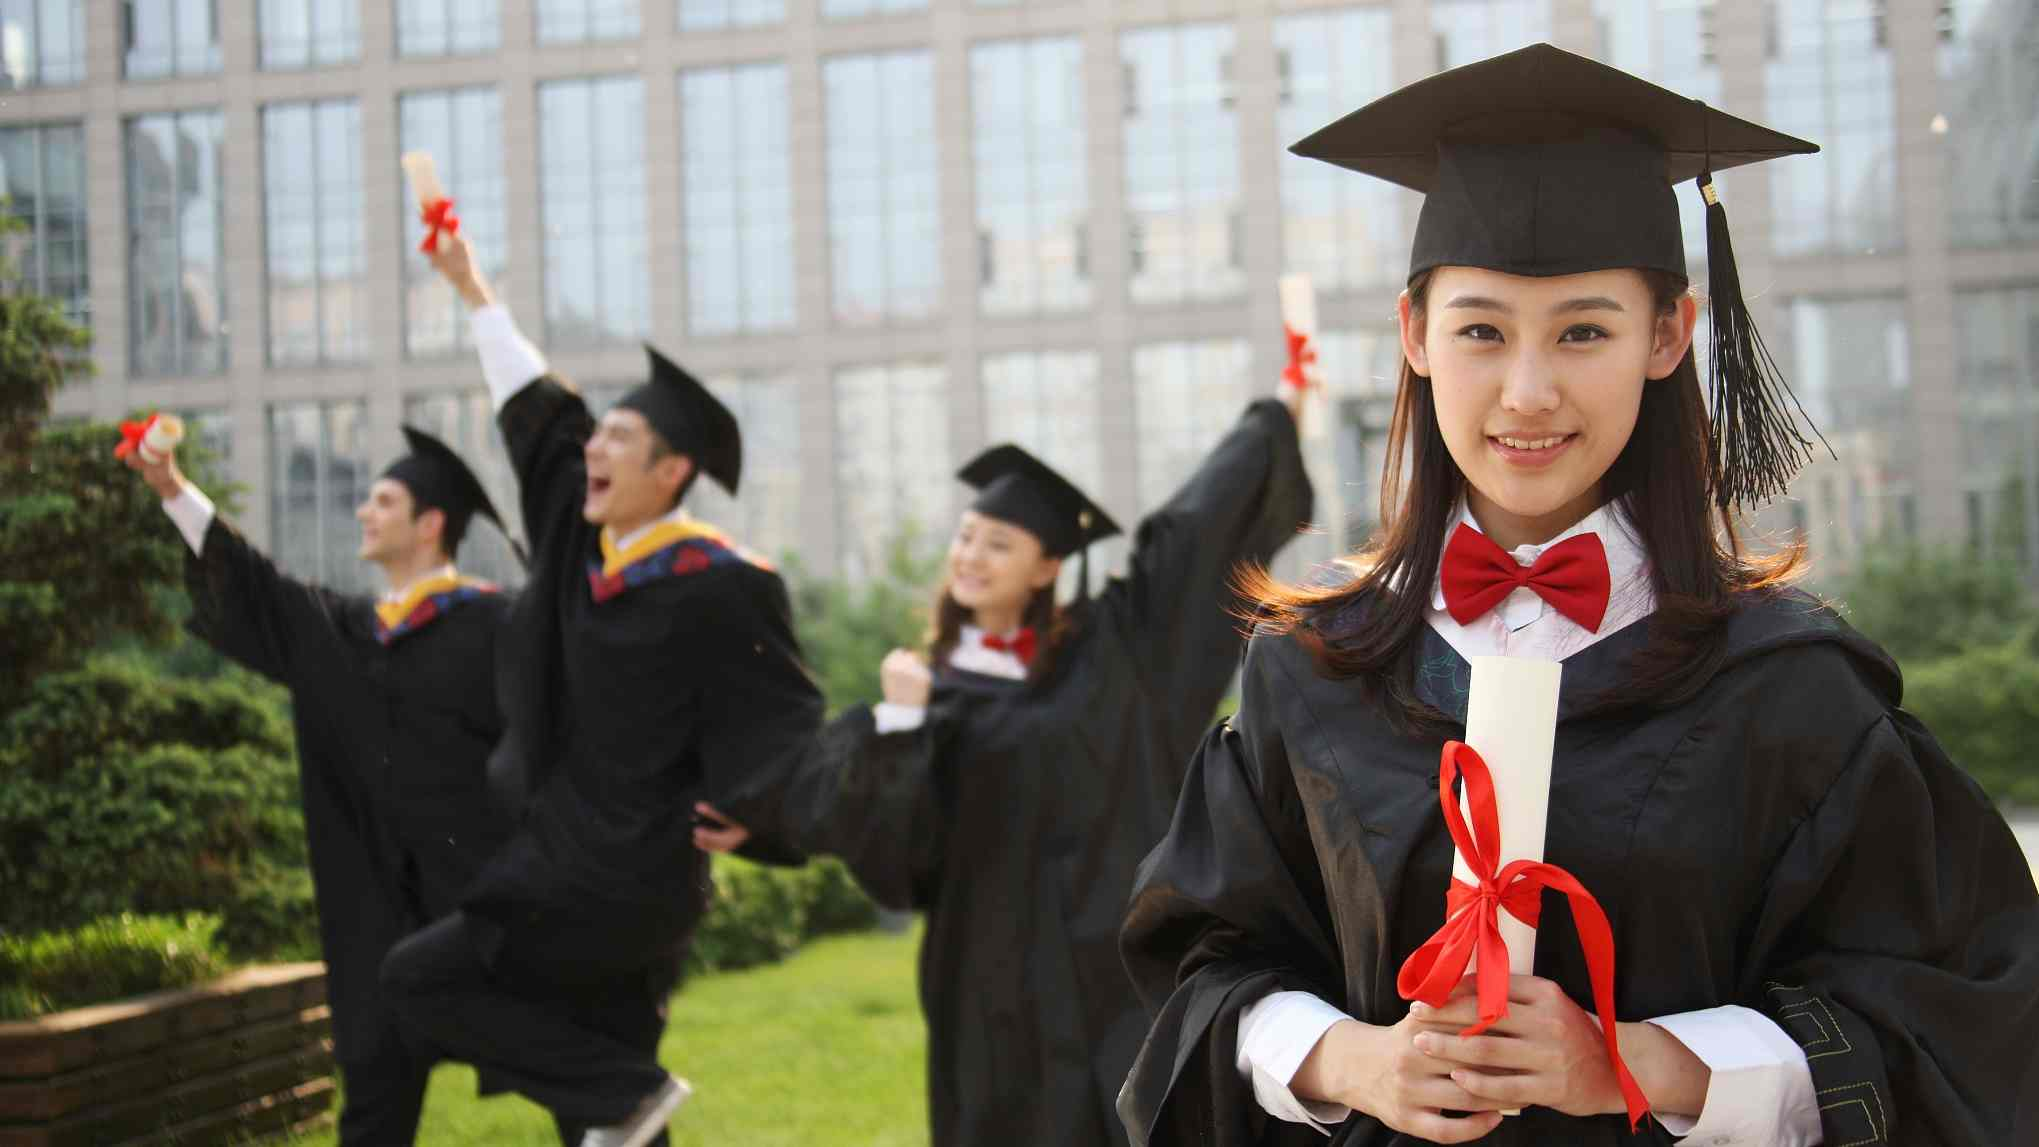 hong-kong-billionaire-cover-tuition-fees-chinese-undegrads-02